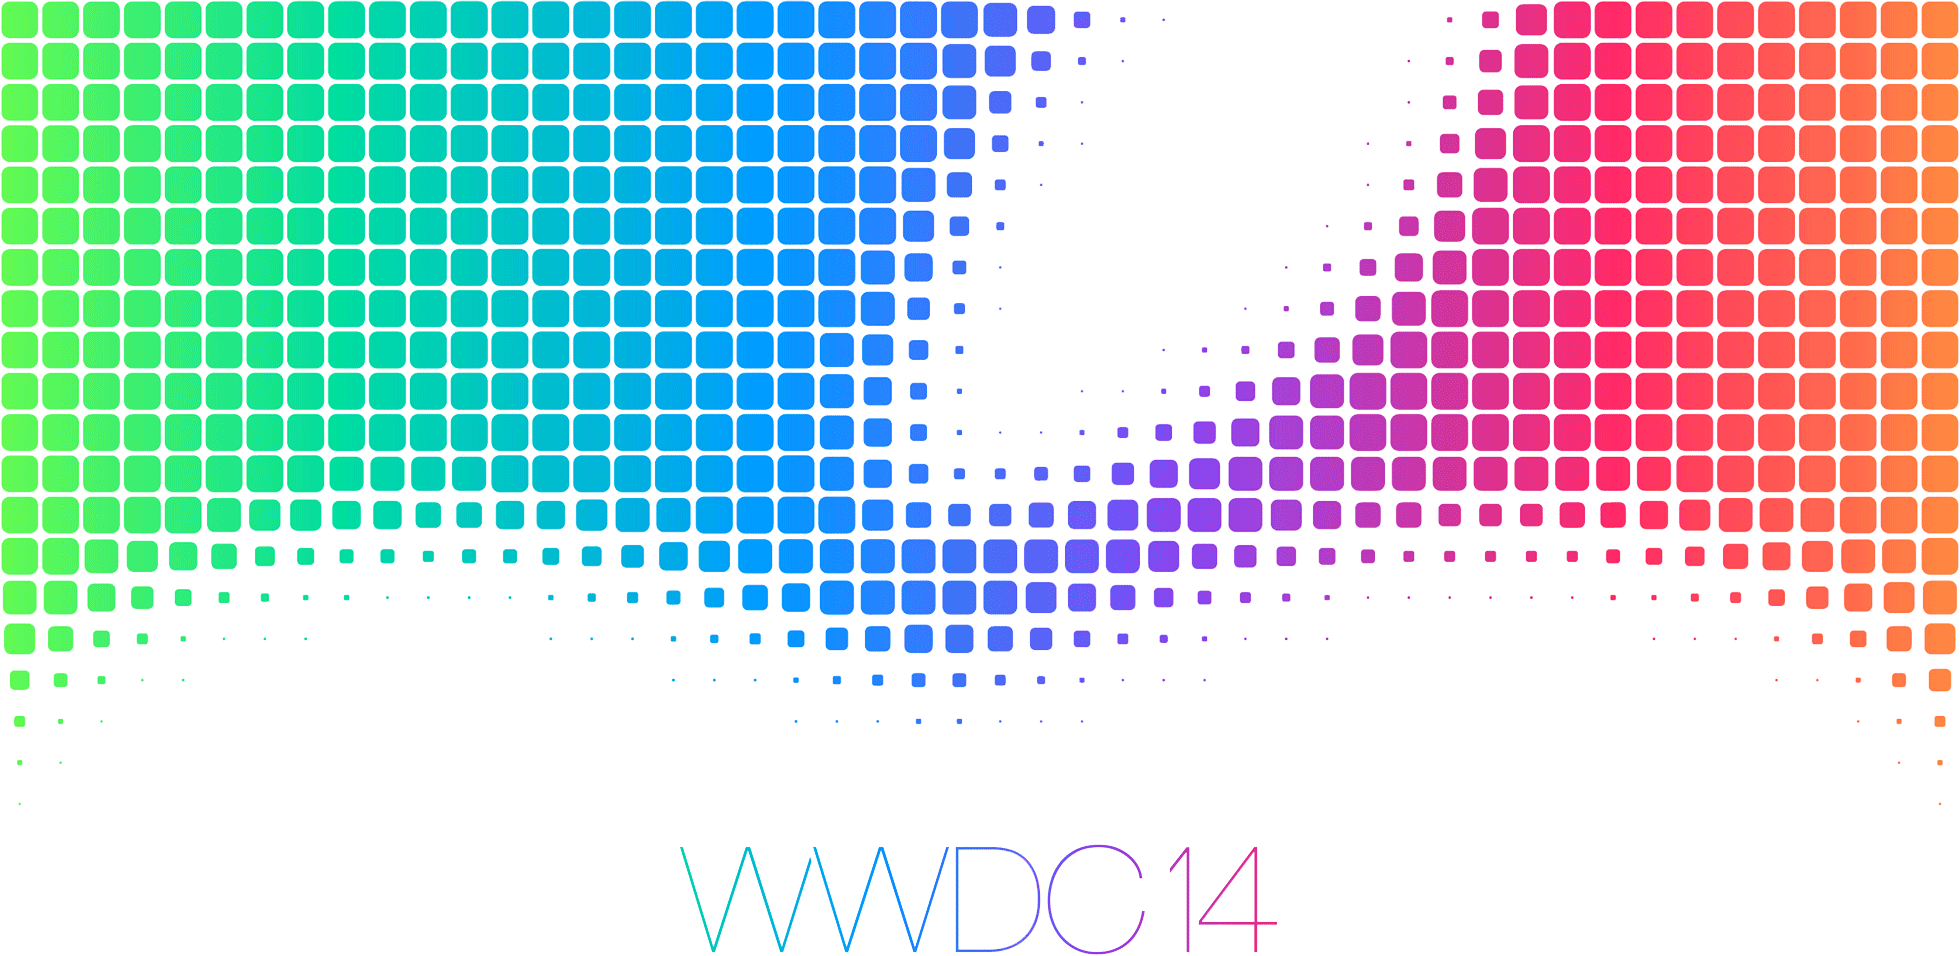 appFigures at WWDC14